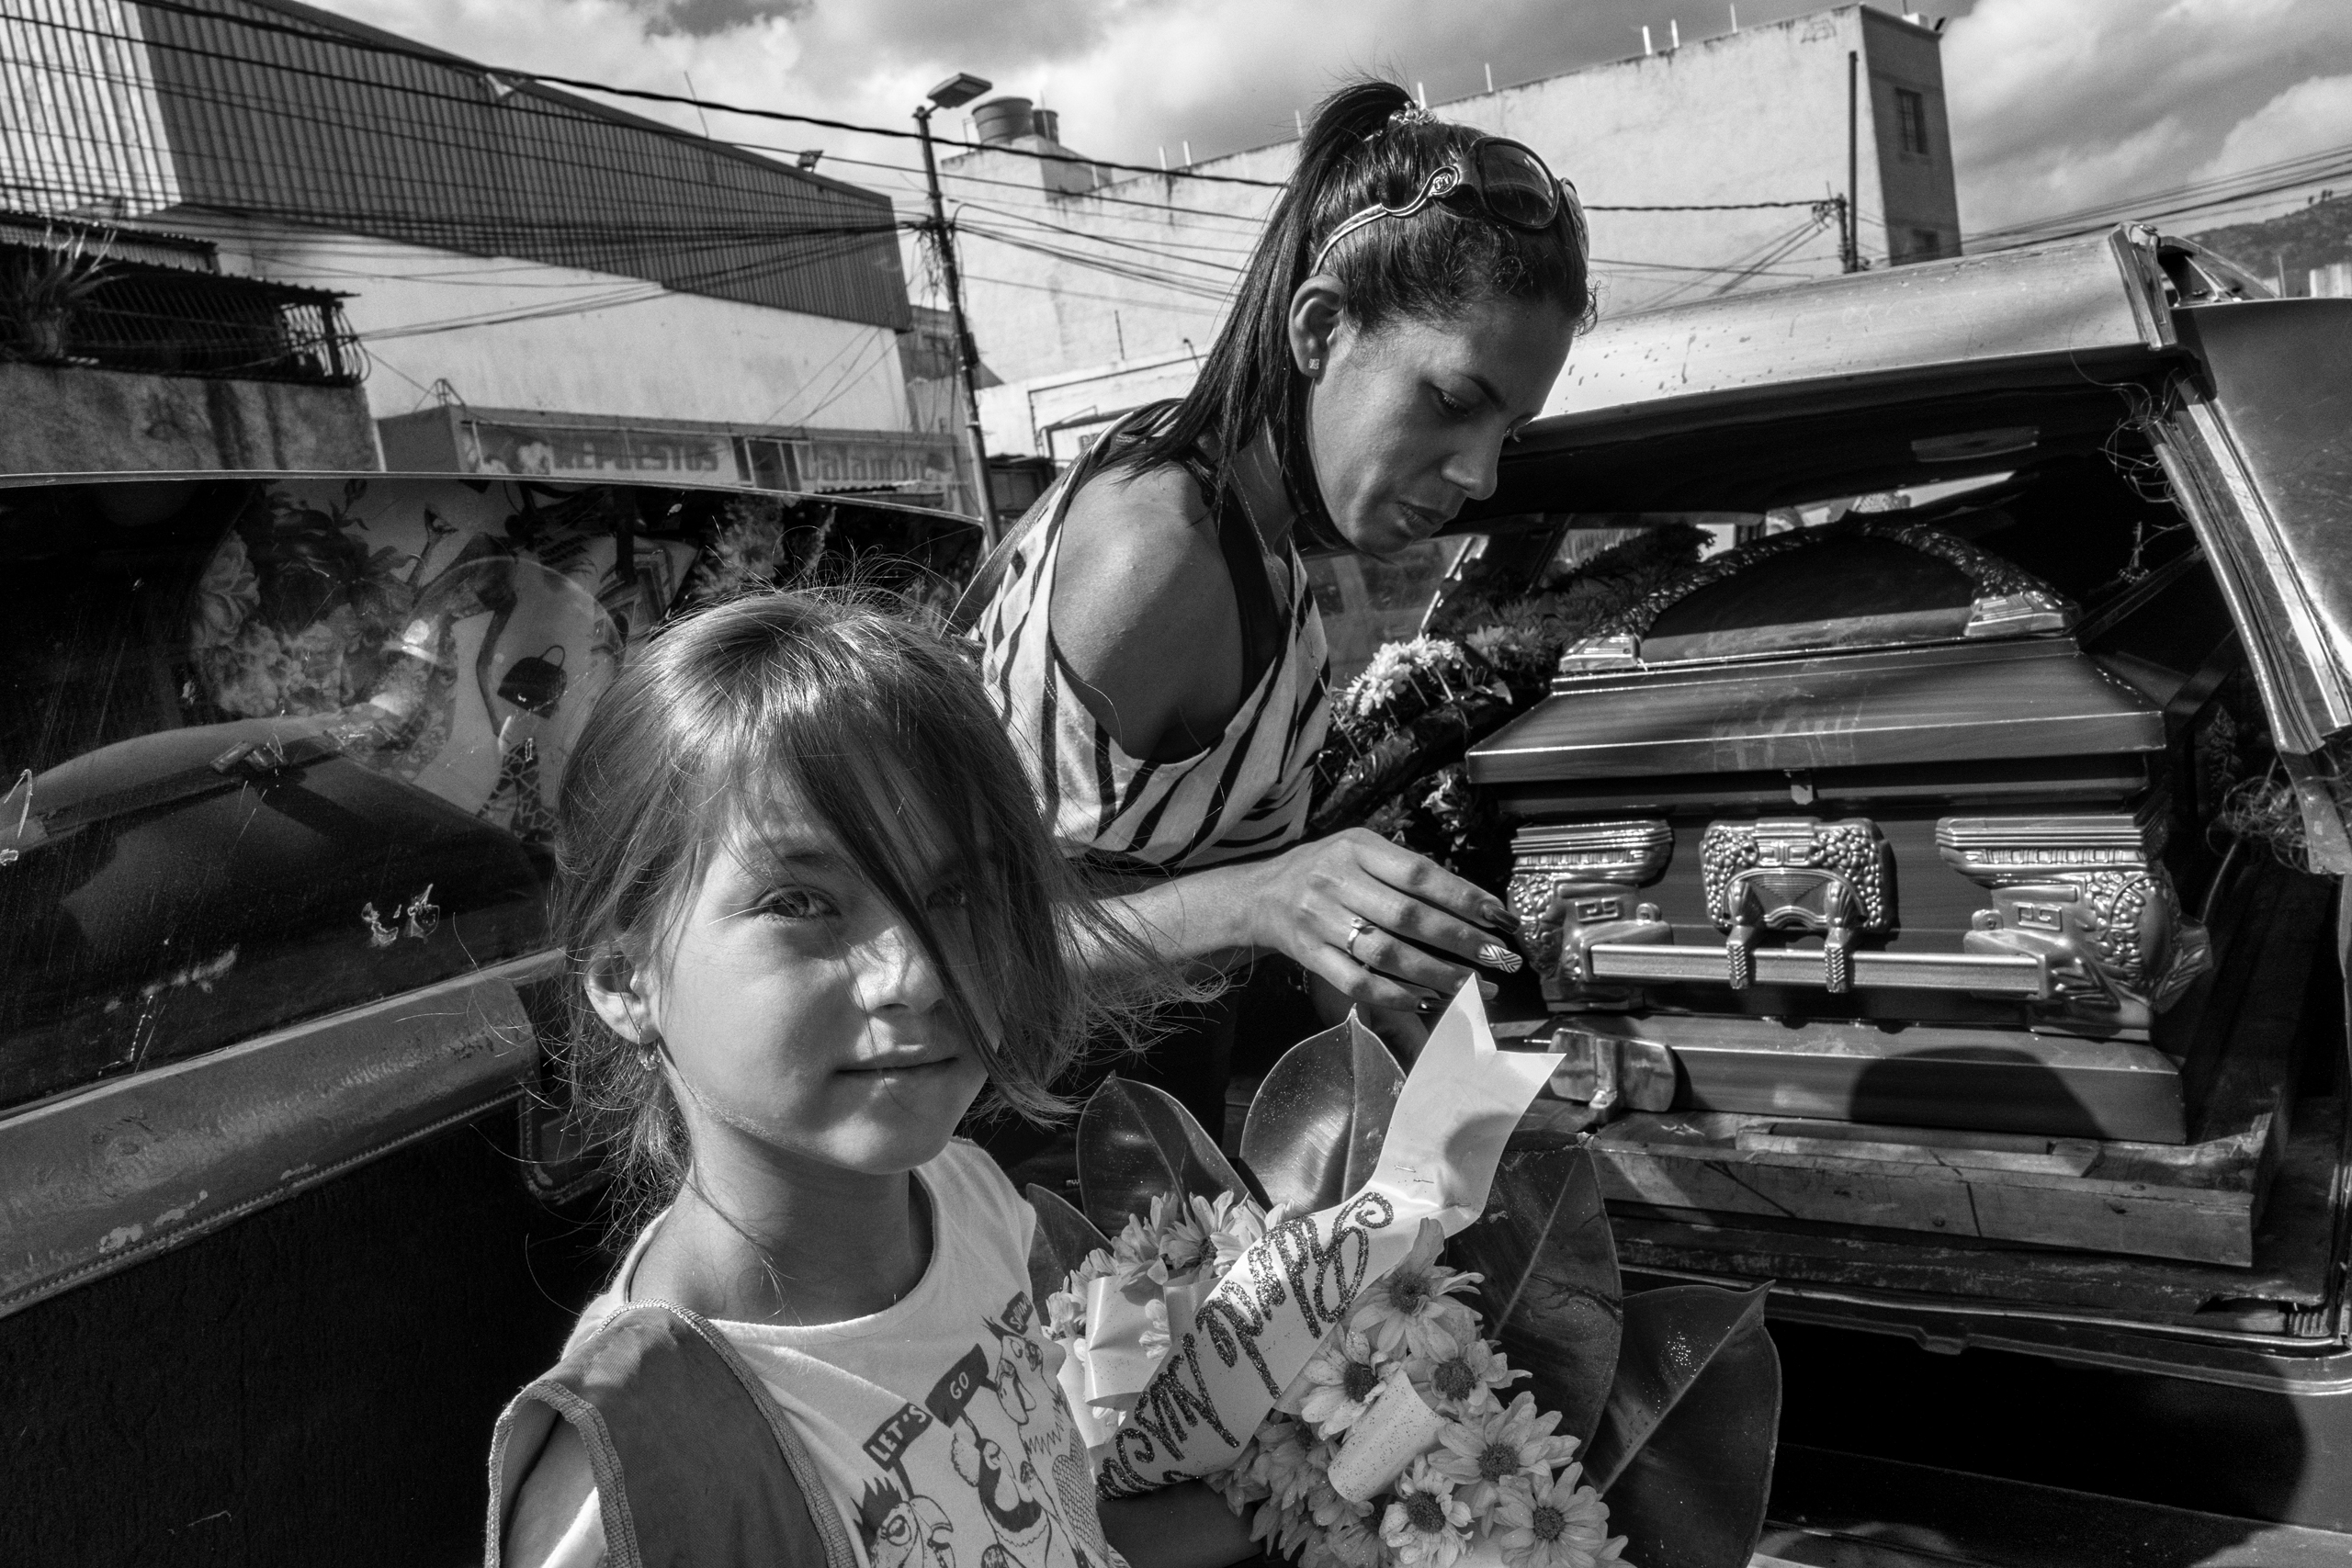 The young niece of 25 year-old Fredy Guerrero, who died after he was arrested by police, prepares to attend his funeral with other family members, June 2016.